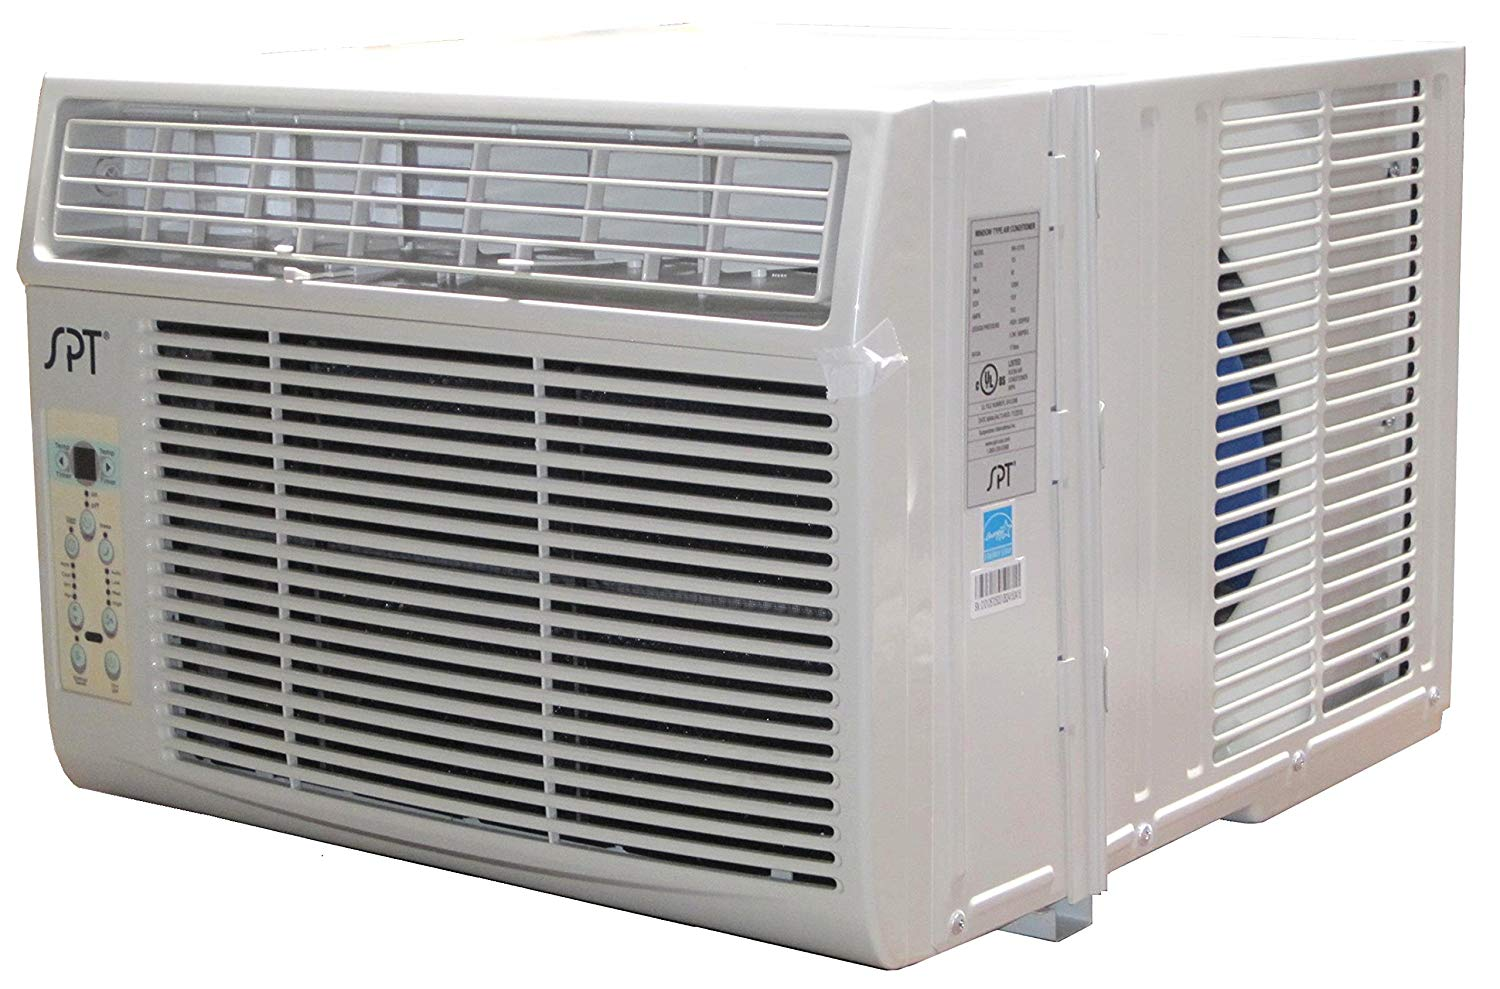 SPT Window Air Conditioner